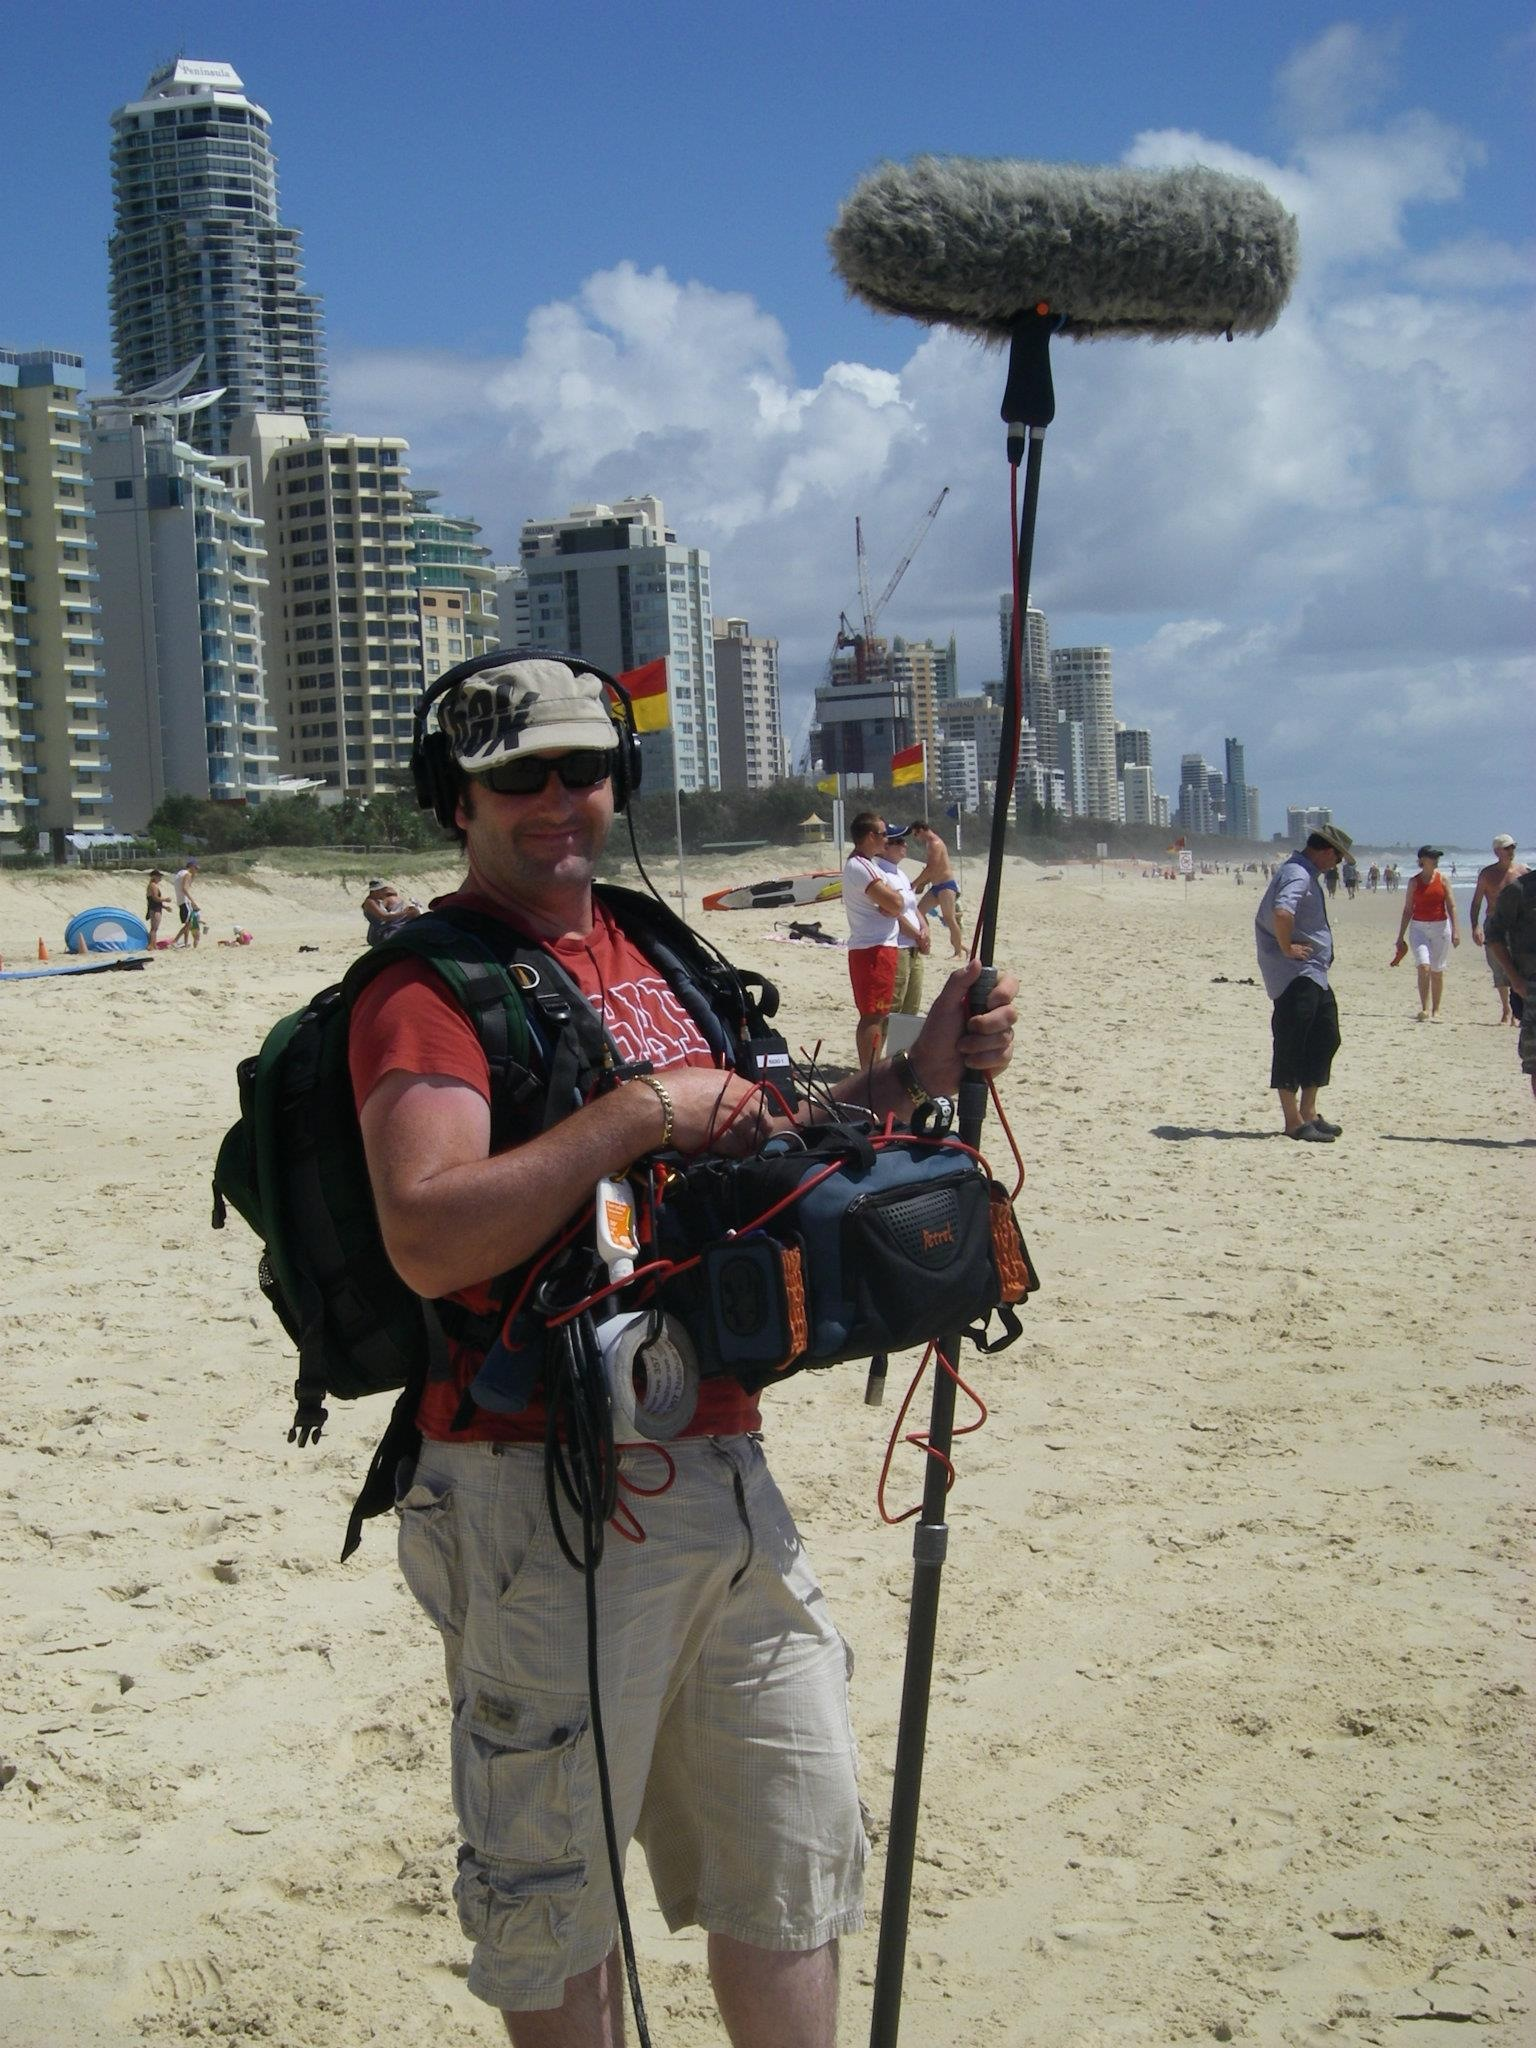 freelance sound recodist marty fay location gold coast beach queensland australi